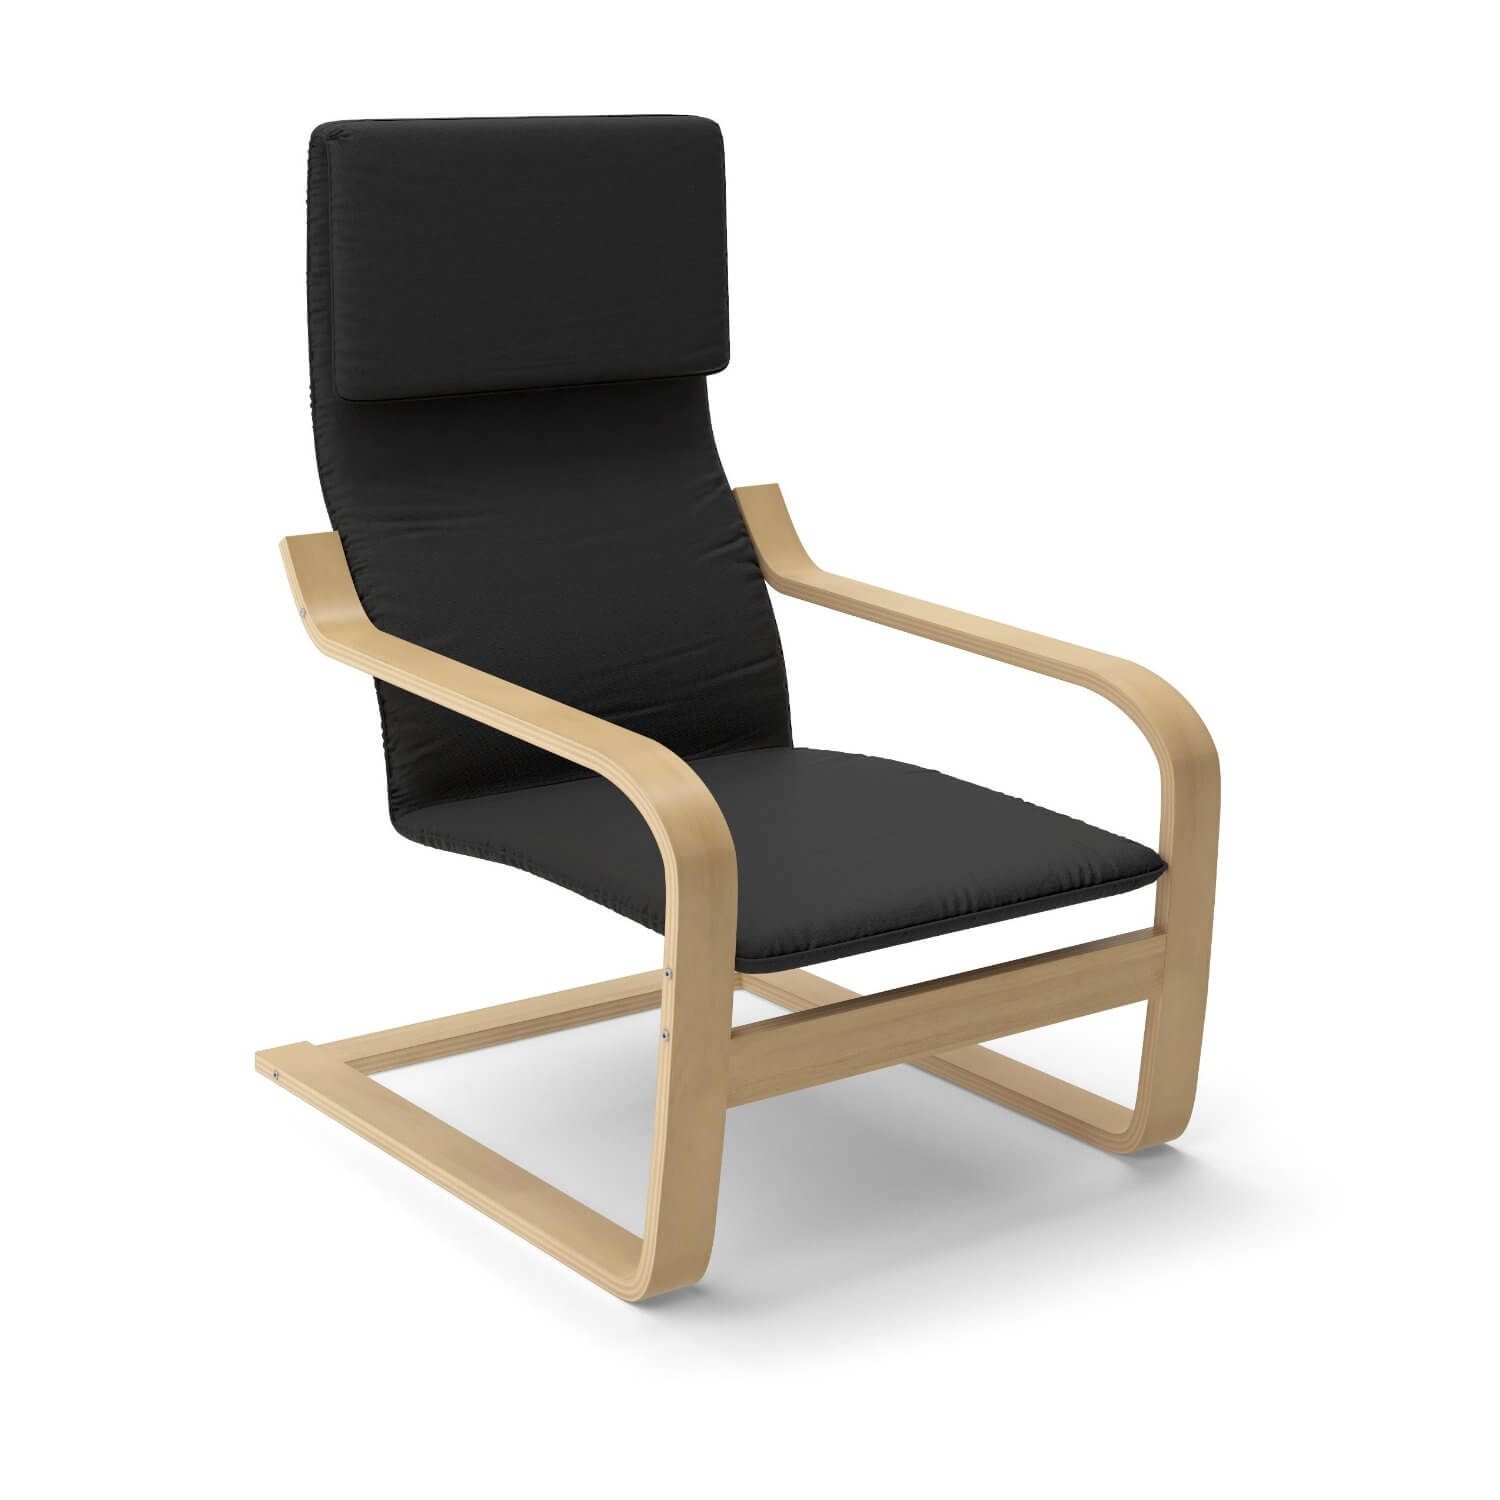 Hereu0027s A Contemporary Accent Chair For Casual Rooms